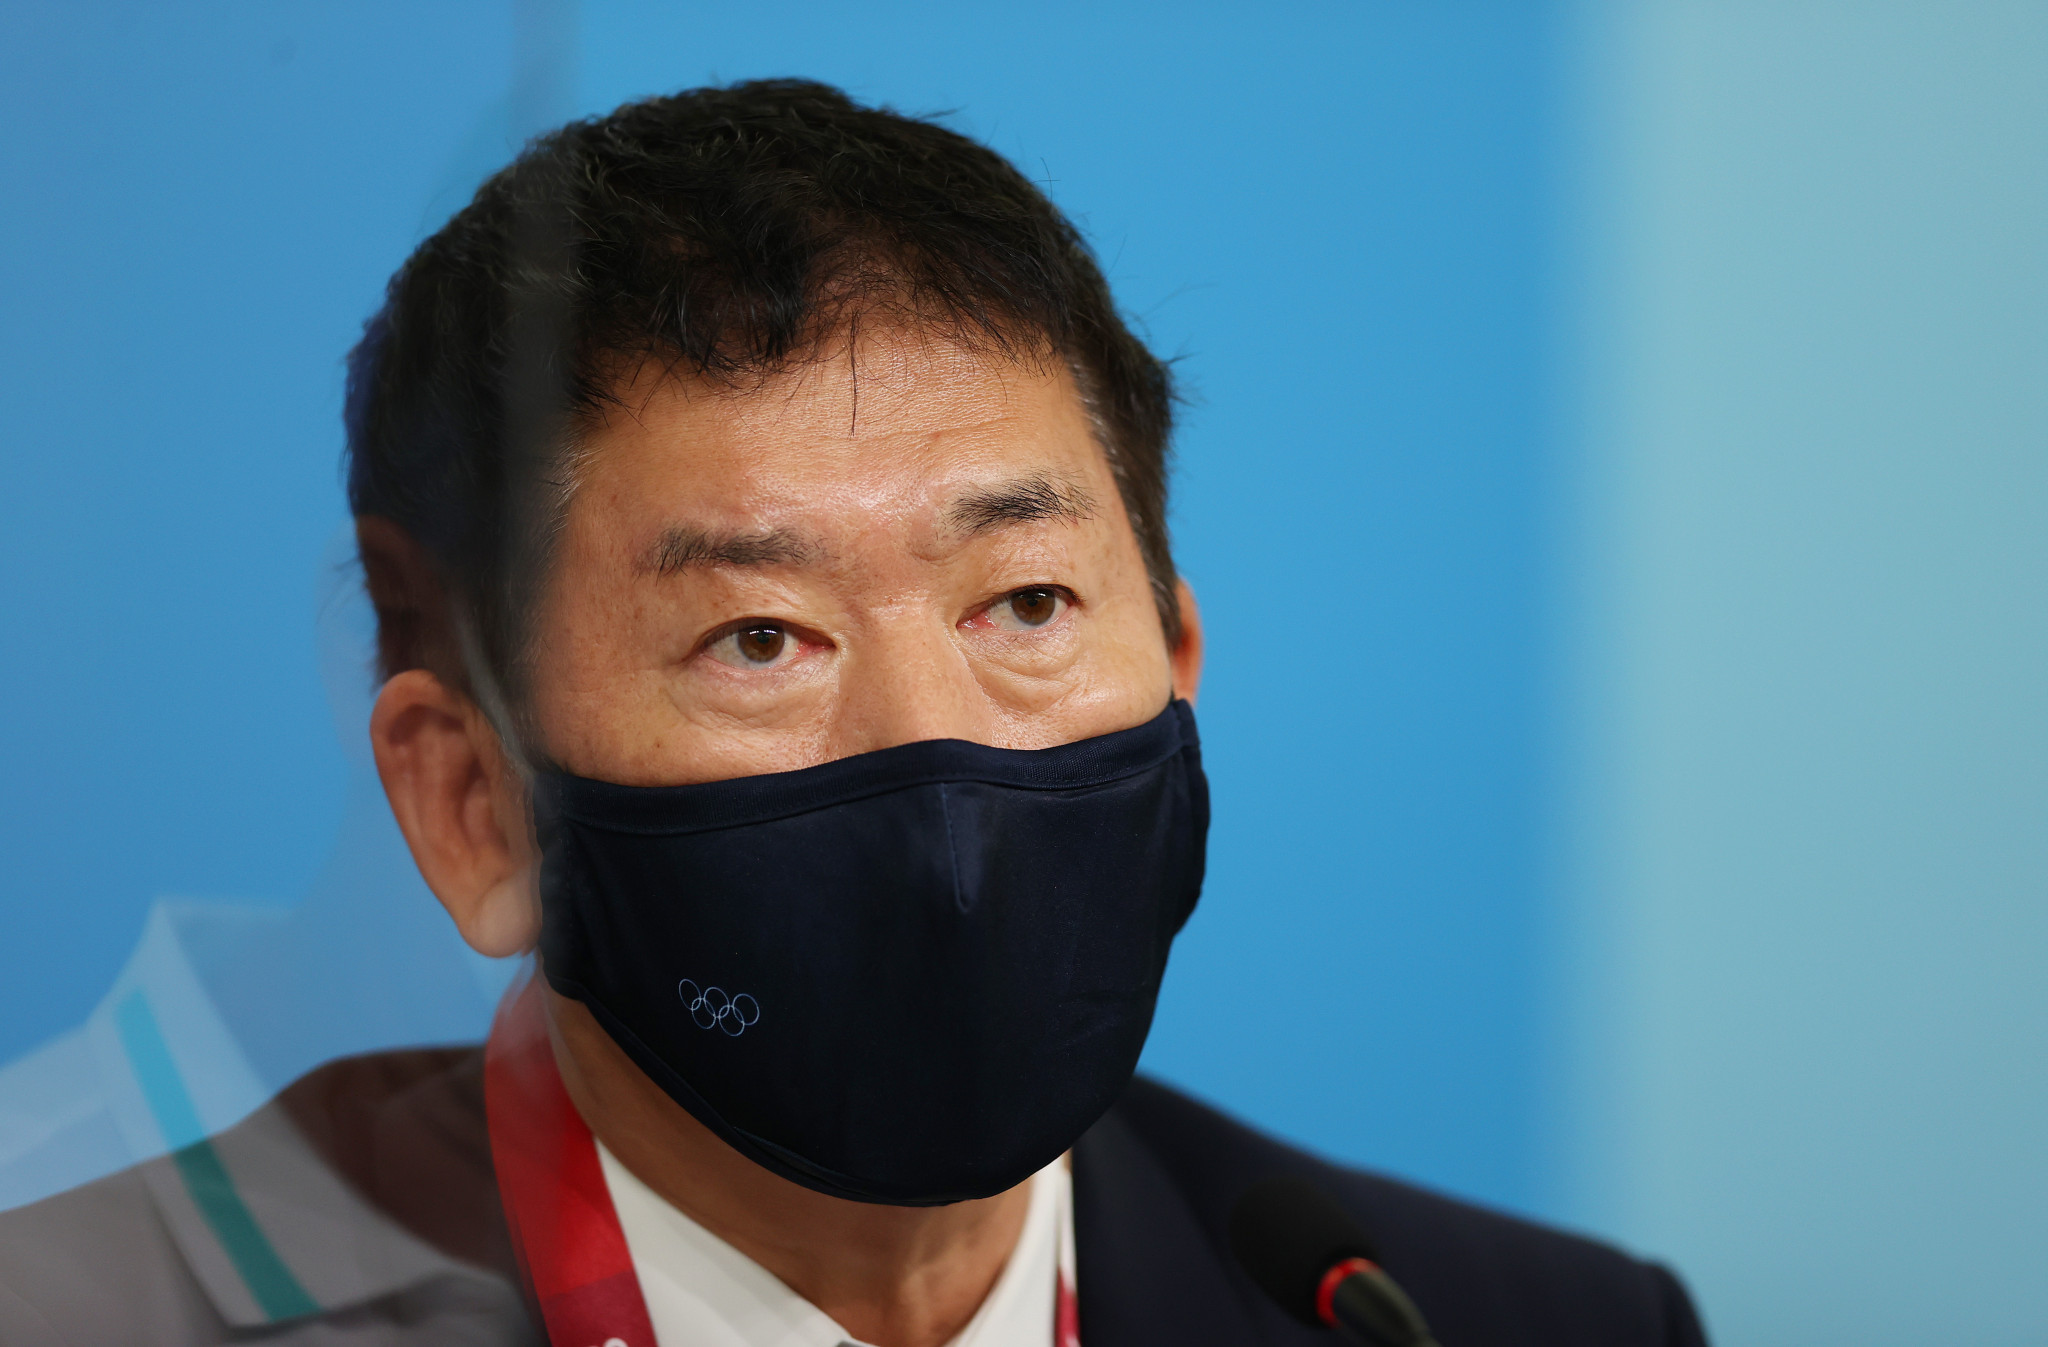 Work to update the FIG's Code of Points for the sport's various disciplines took place at a symposium in Russia last year led by FIG President Morinari Watanabe ©Getty Images